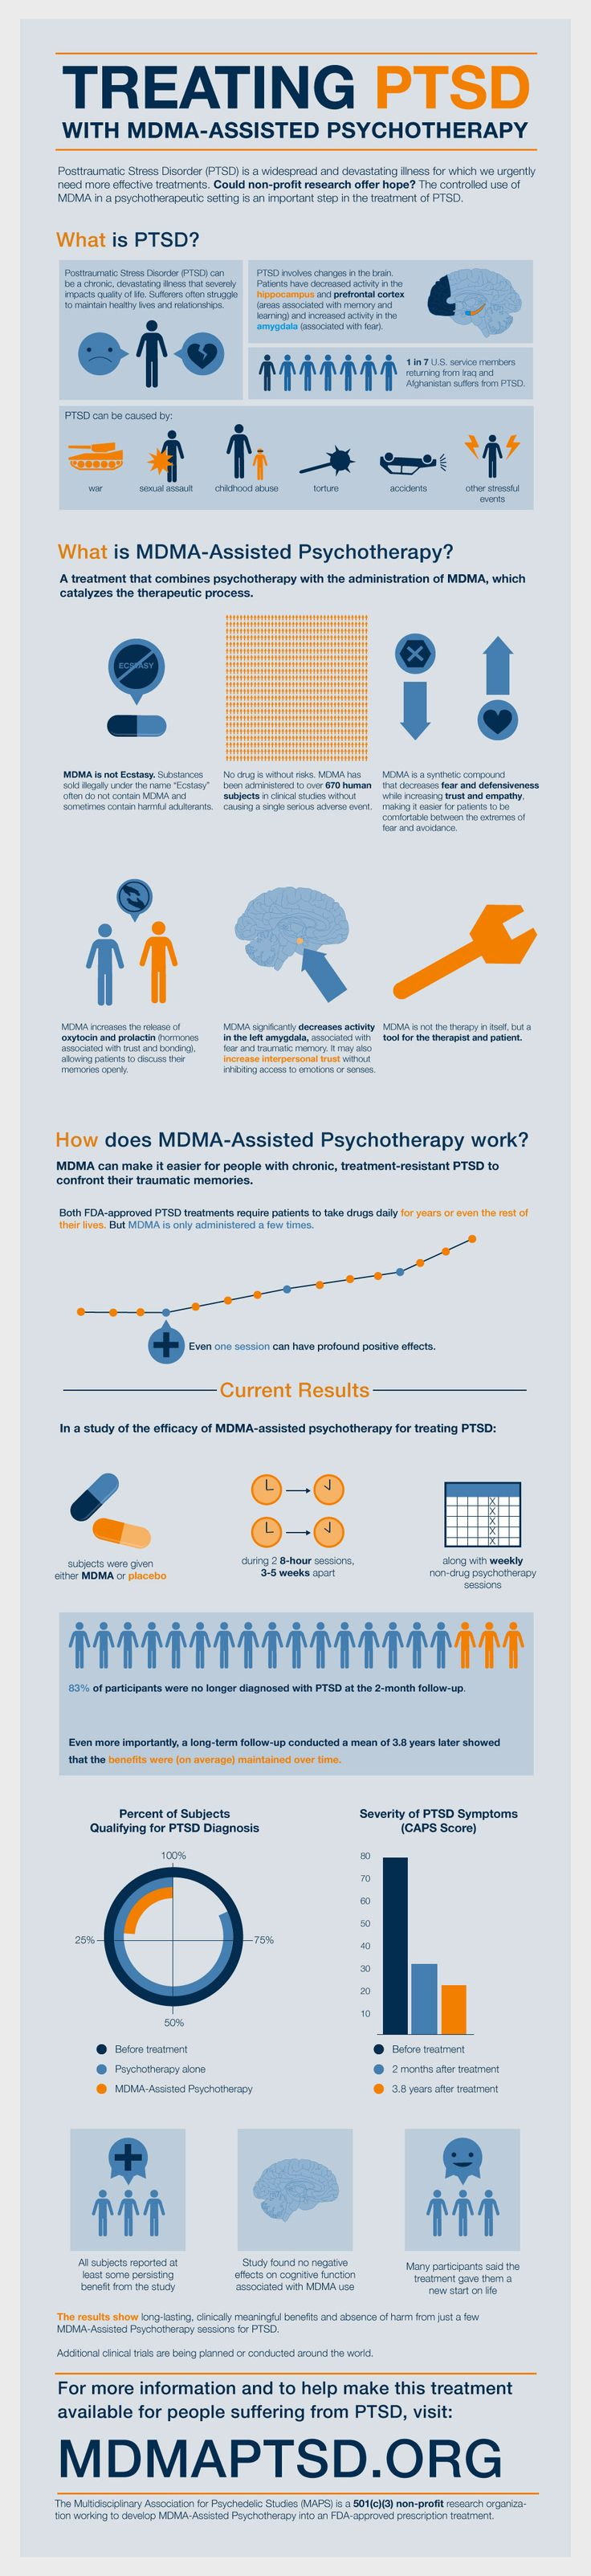 Treating PTSD Infographic ~ MDMA-Assisted Psychotherapy (repin does not = support)